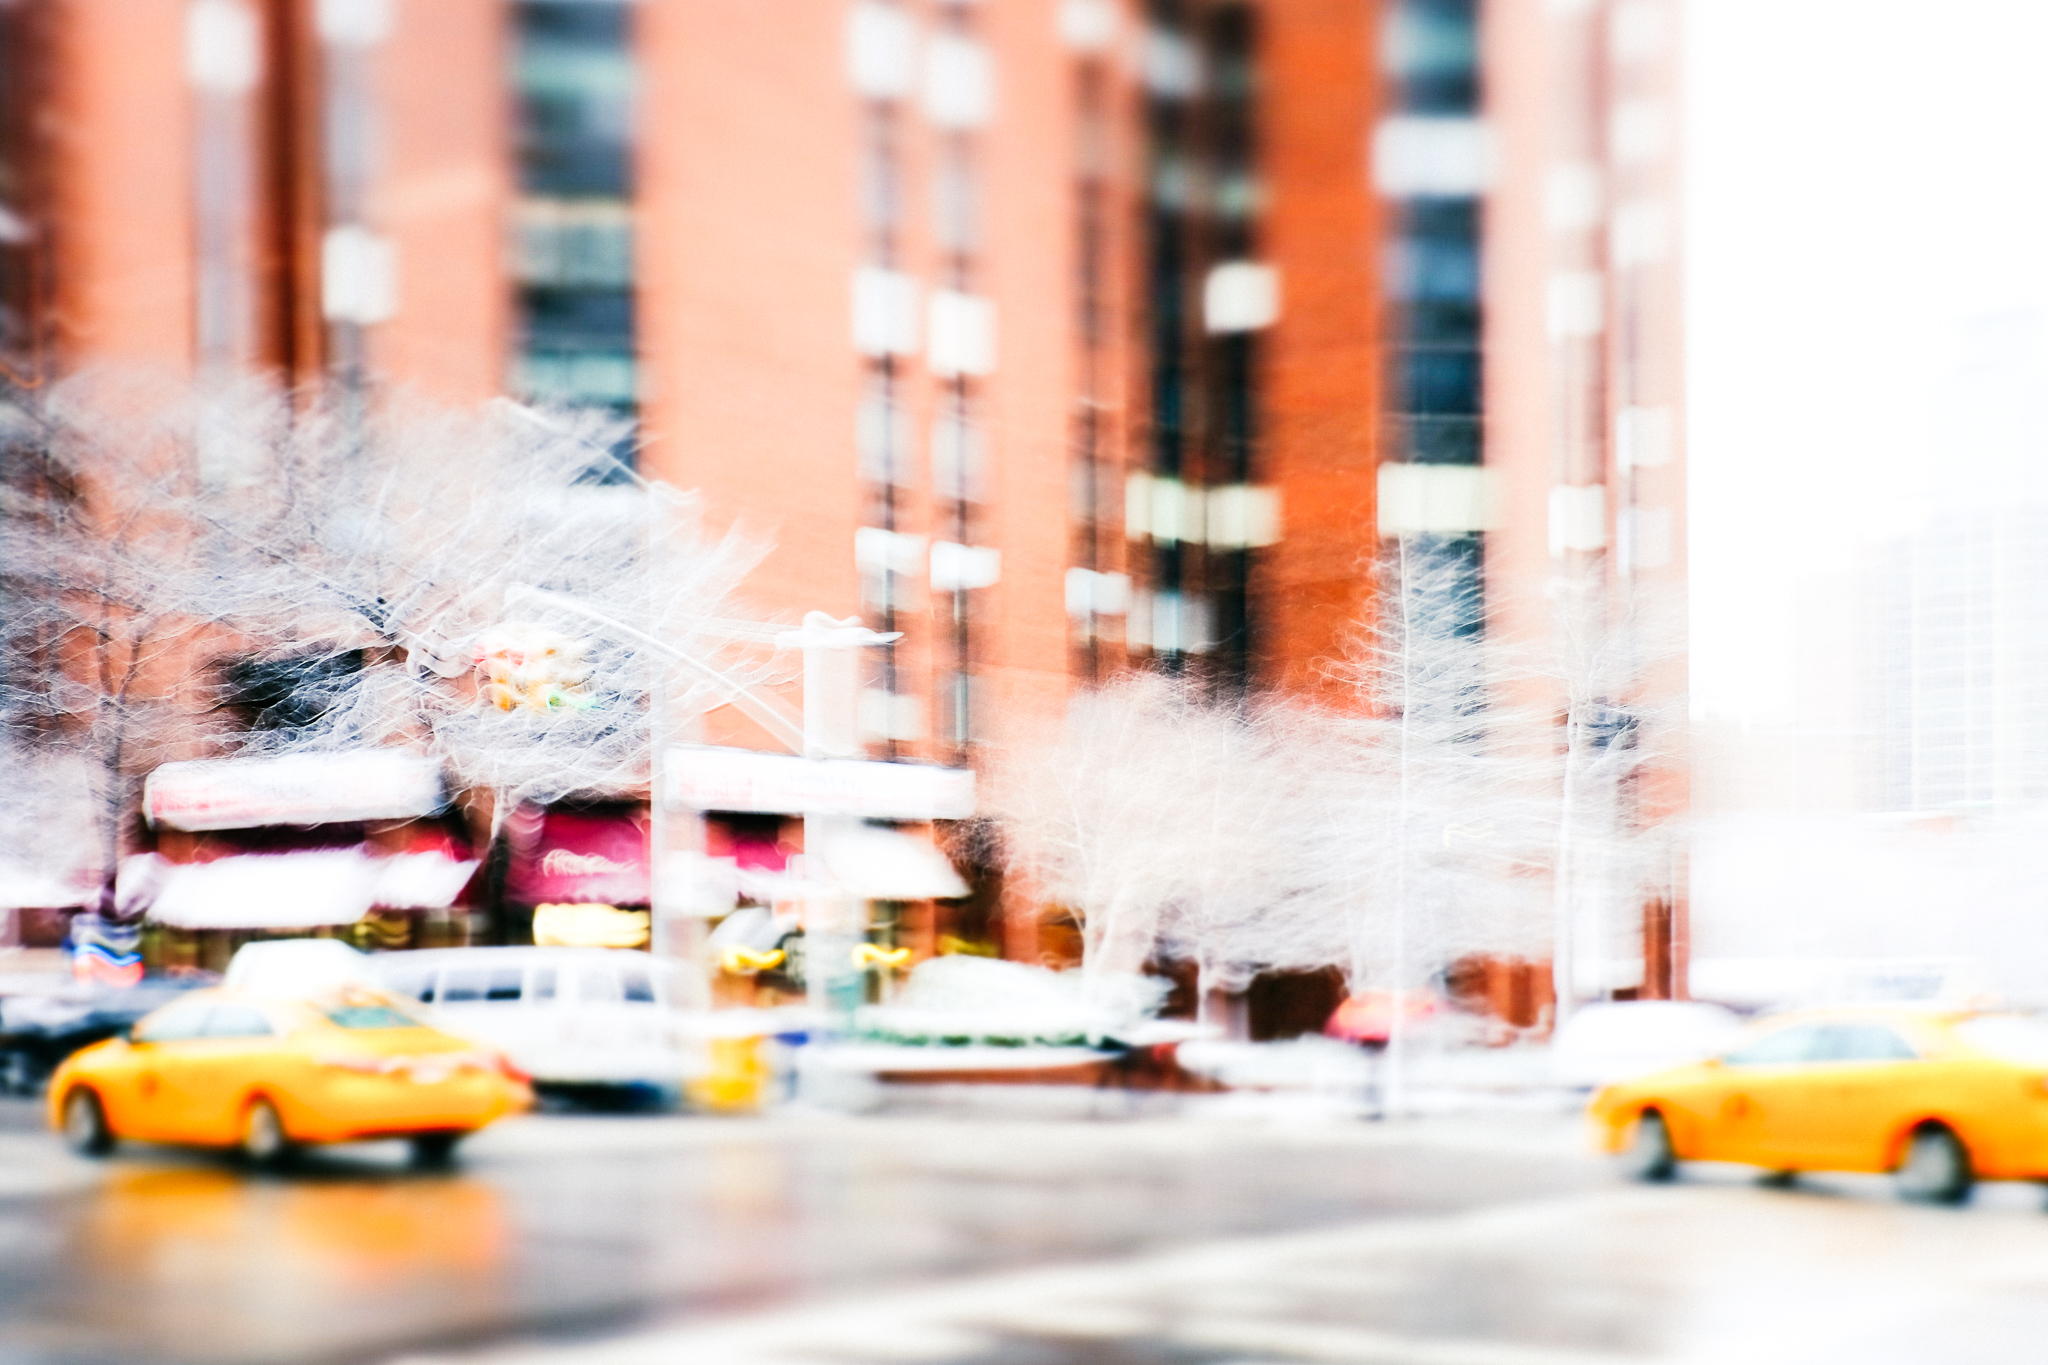 BOMB STORM and other pleasures, New York by Carine